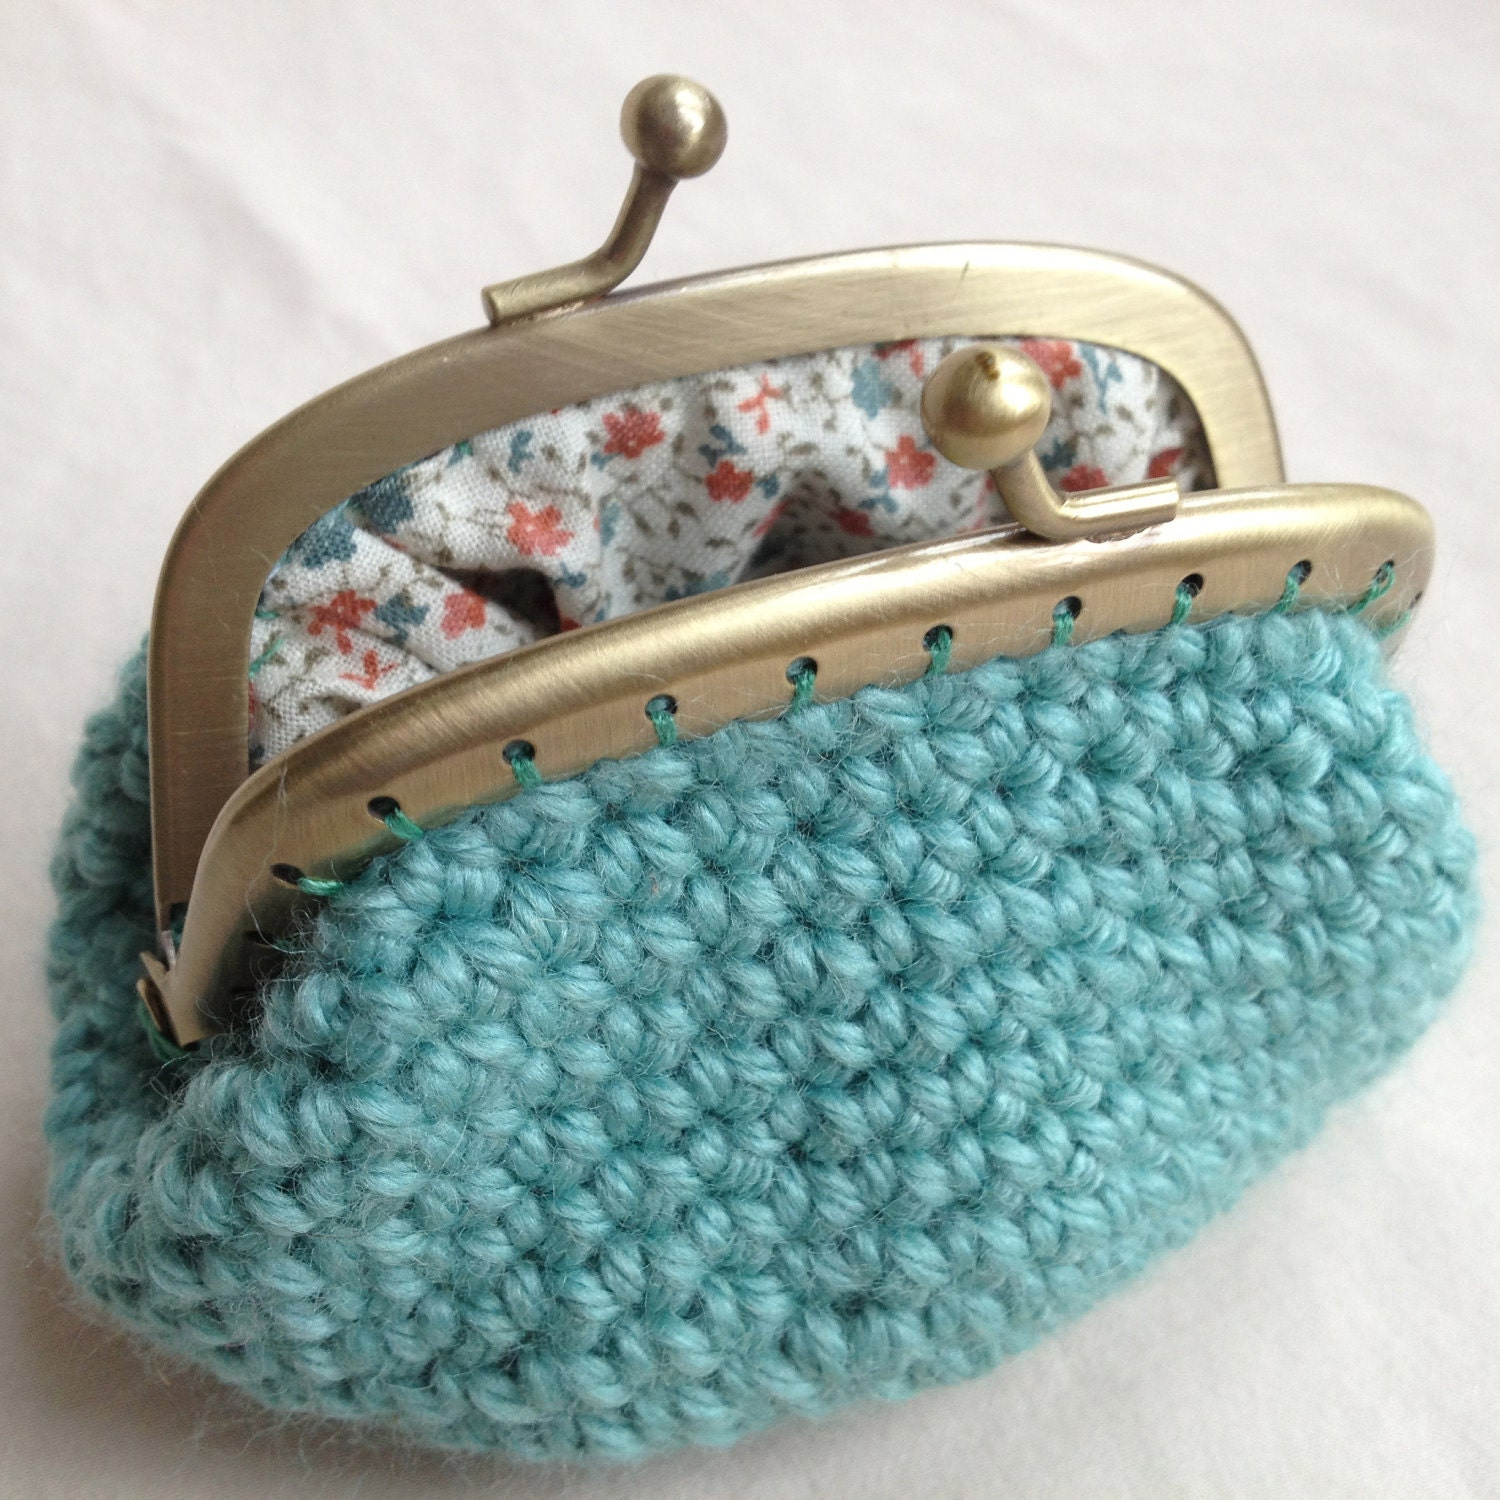 Sea Green Crochet Coin Purse By MakerMama On Etsy